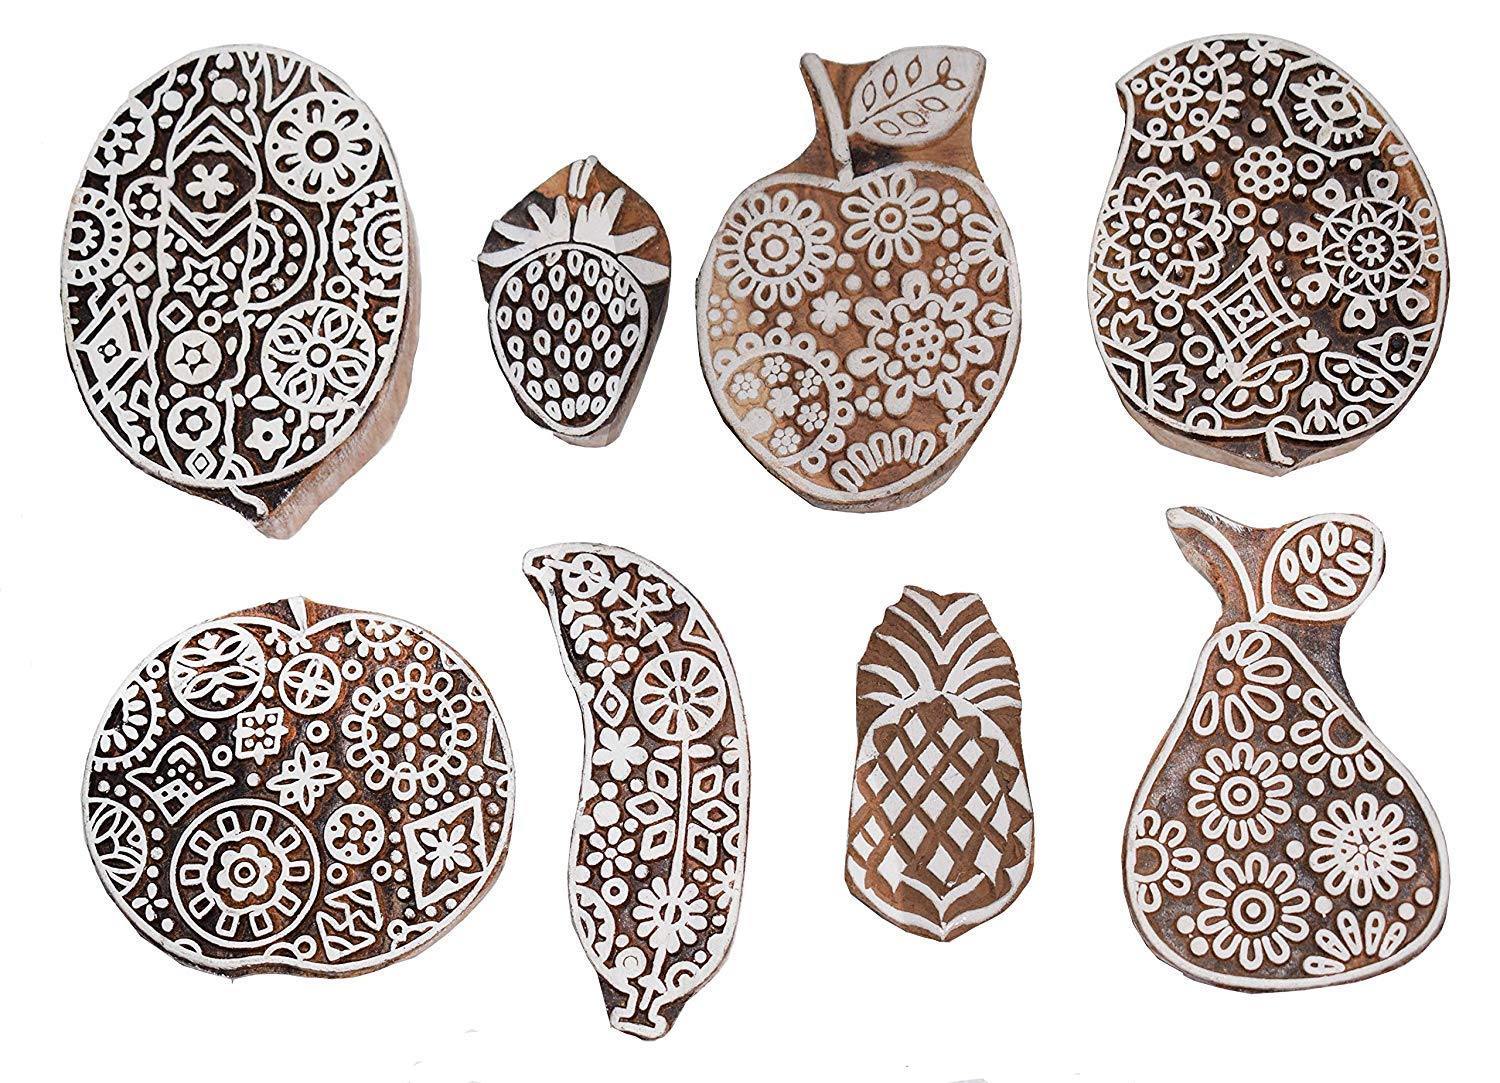 BARREL CRAFTS GALAXY Printing Stamps Fruits Design Wooden Blocks (Set of 8) Hand-Carved for Saree Border Making Pottery Crafts Textile Printing